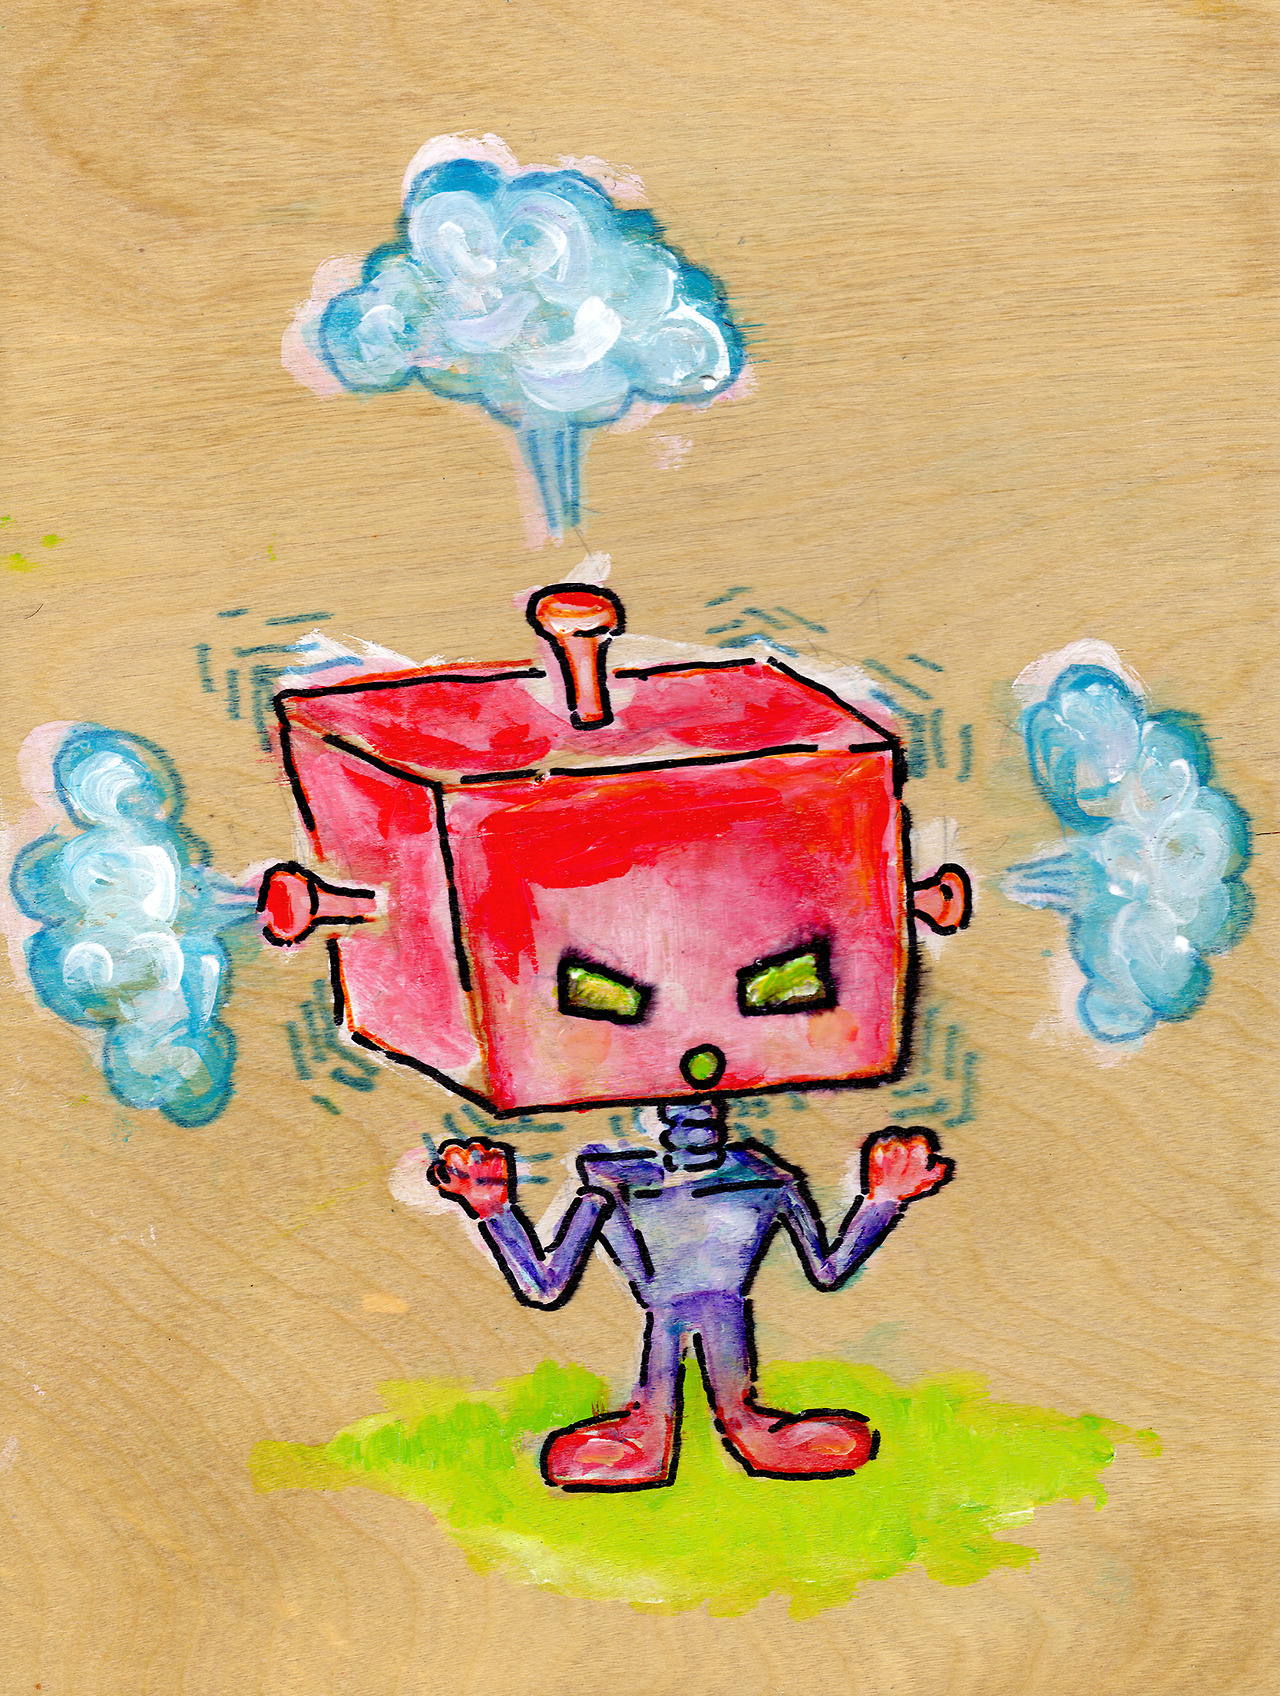 9/17/13 -  Redheaded Ragebot.    Me before caffeine this morning. Actually, me after caffeine this morning. Today's annoying and very expensive.   Buy it here -  http://taylorwinder.bigcartel.com    Prints of it here -  http://society6.com/taylorwinder